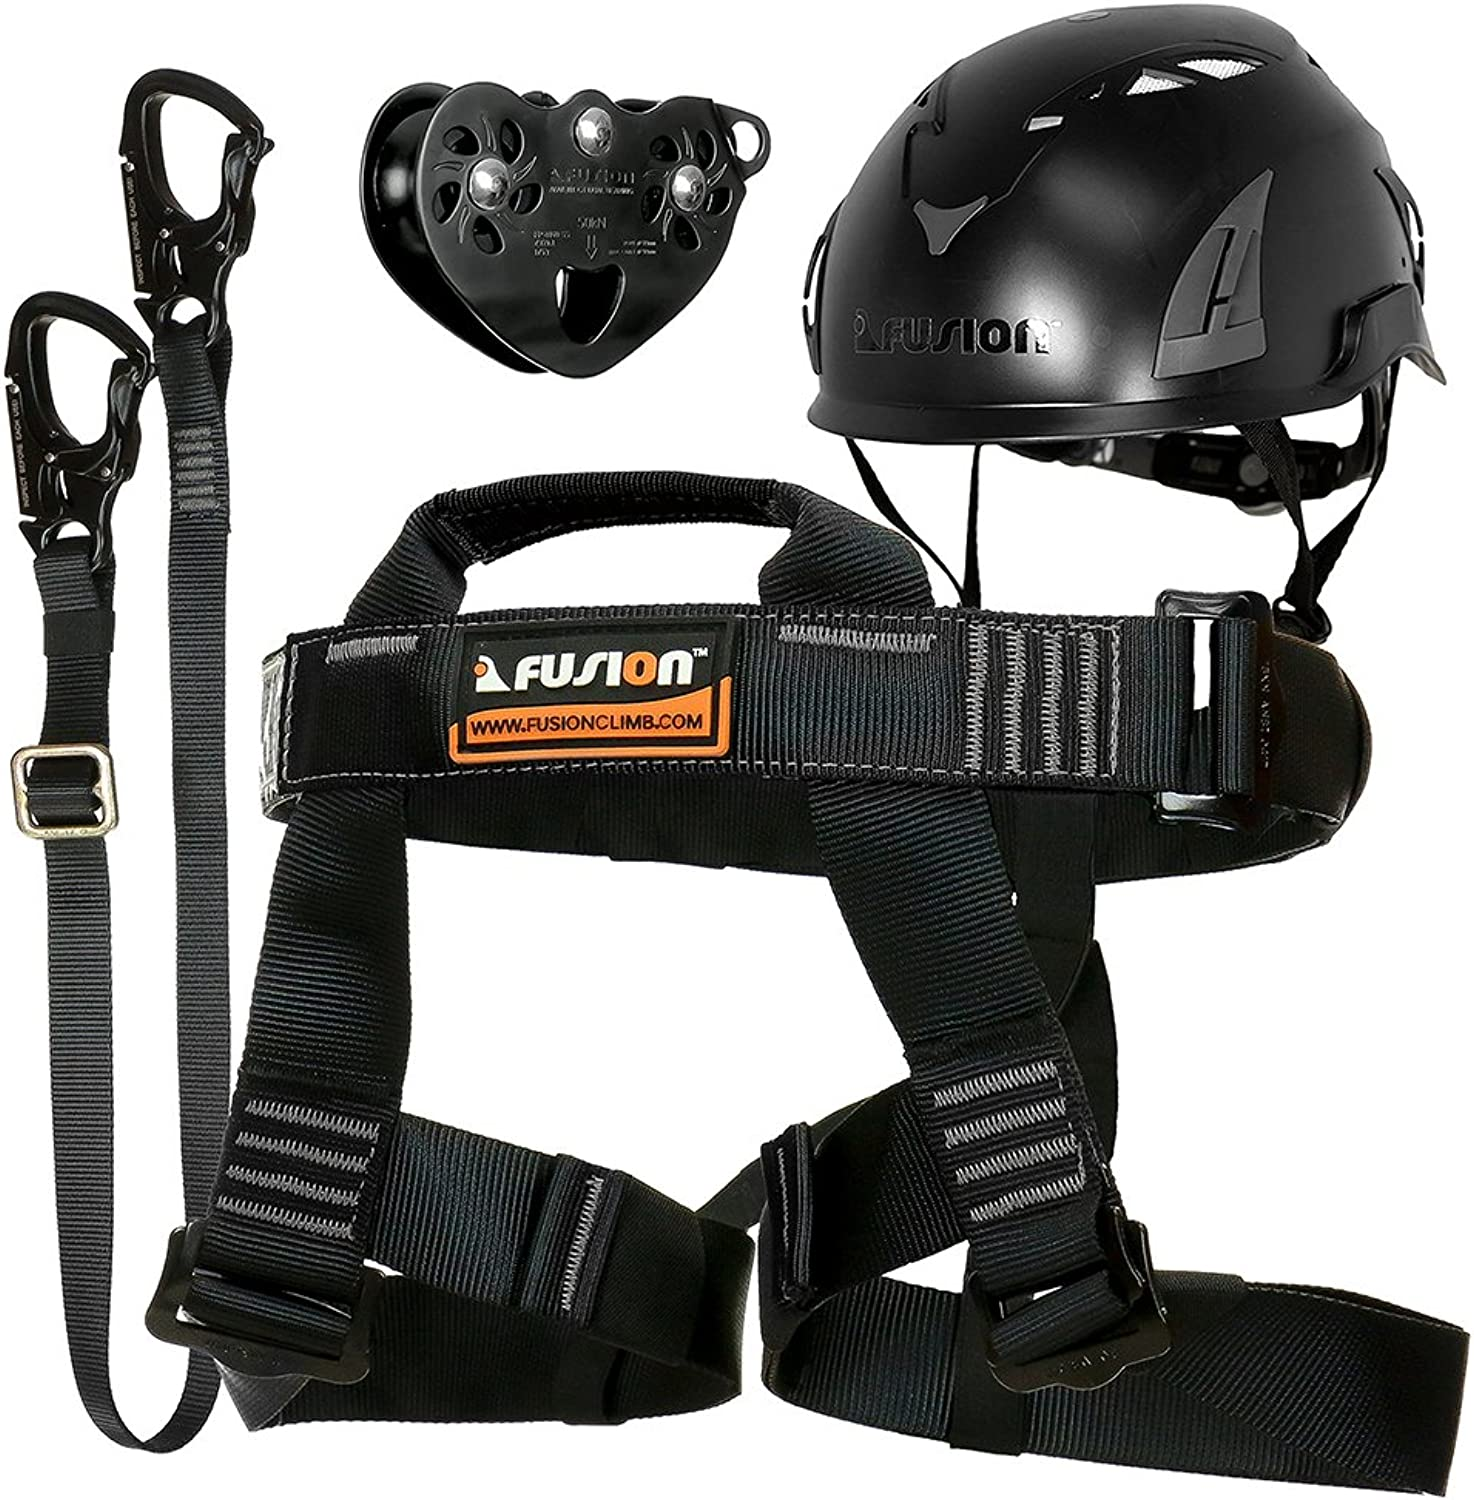 Fusion Climb FTKAHLTH07 Adults Commercial Zip Line Kit Harness Lanyard Trolley Helmet Bundle